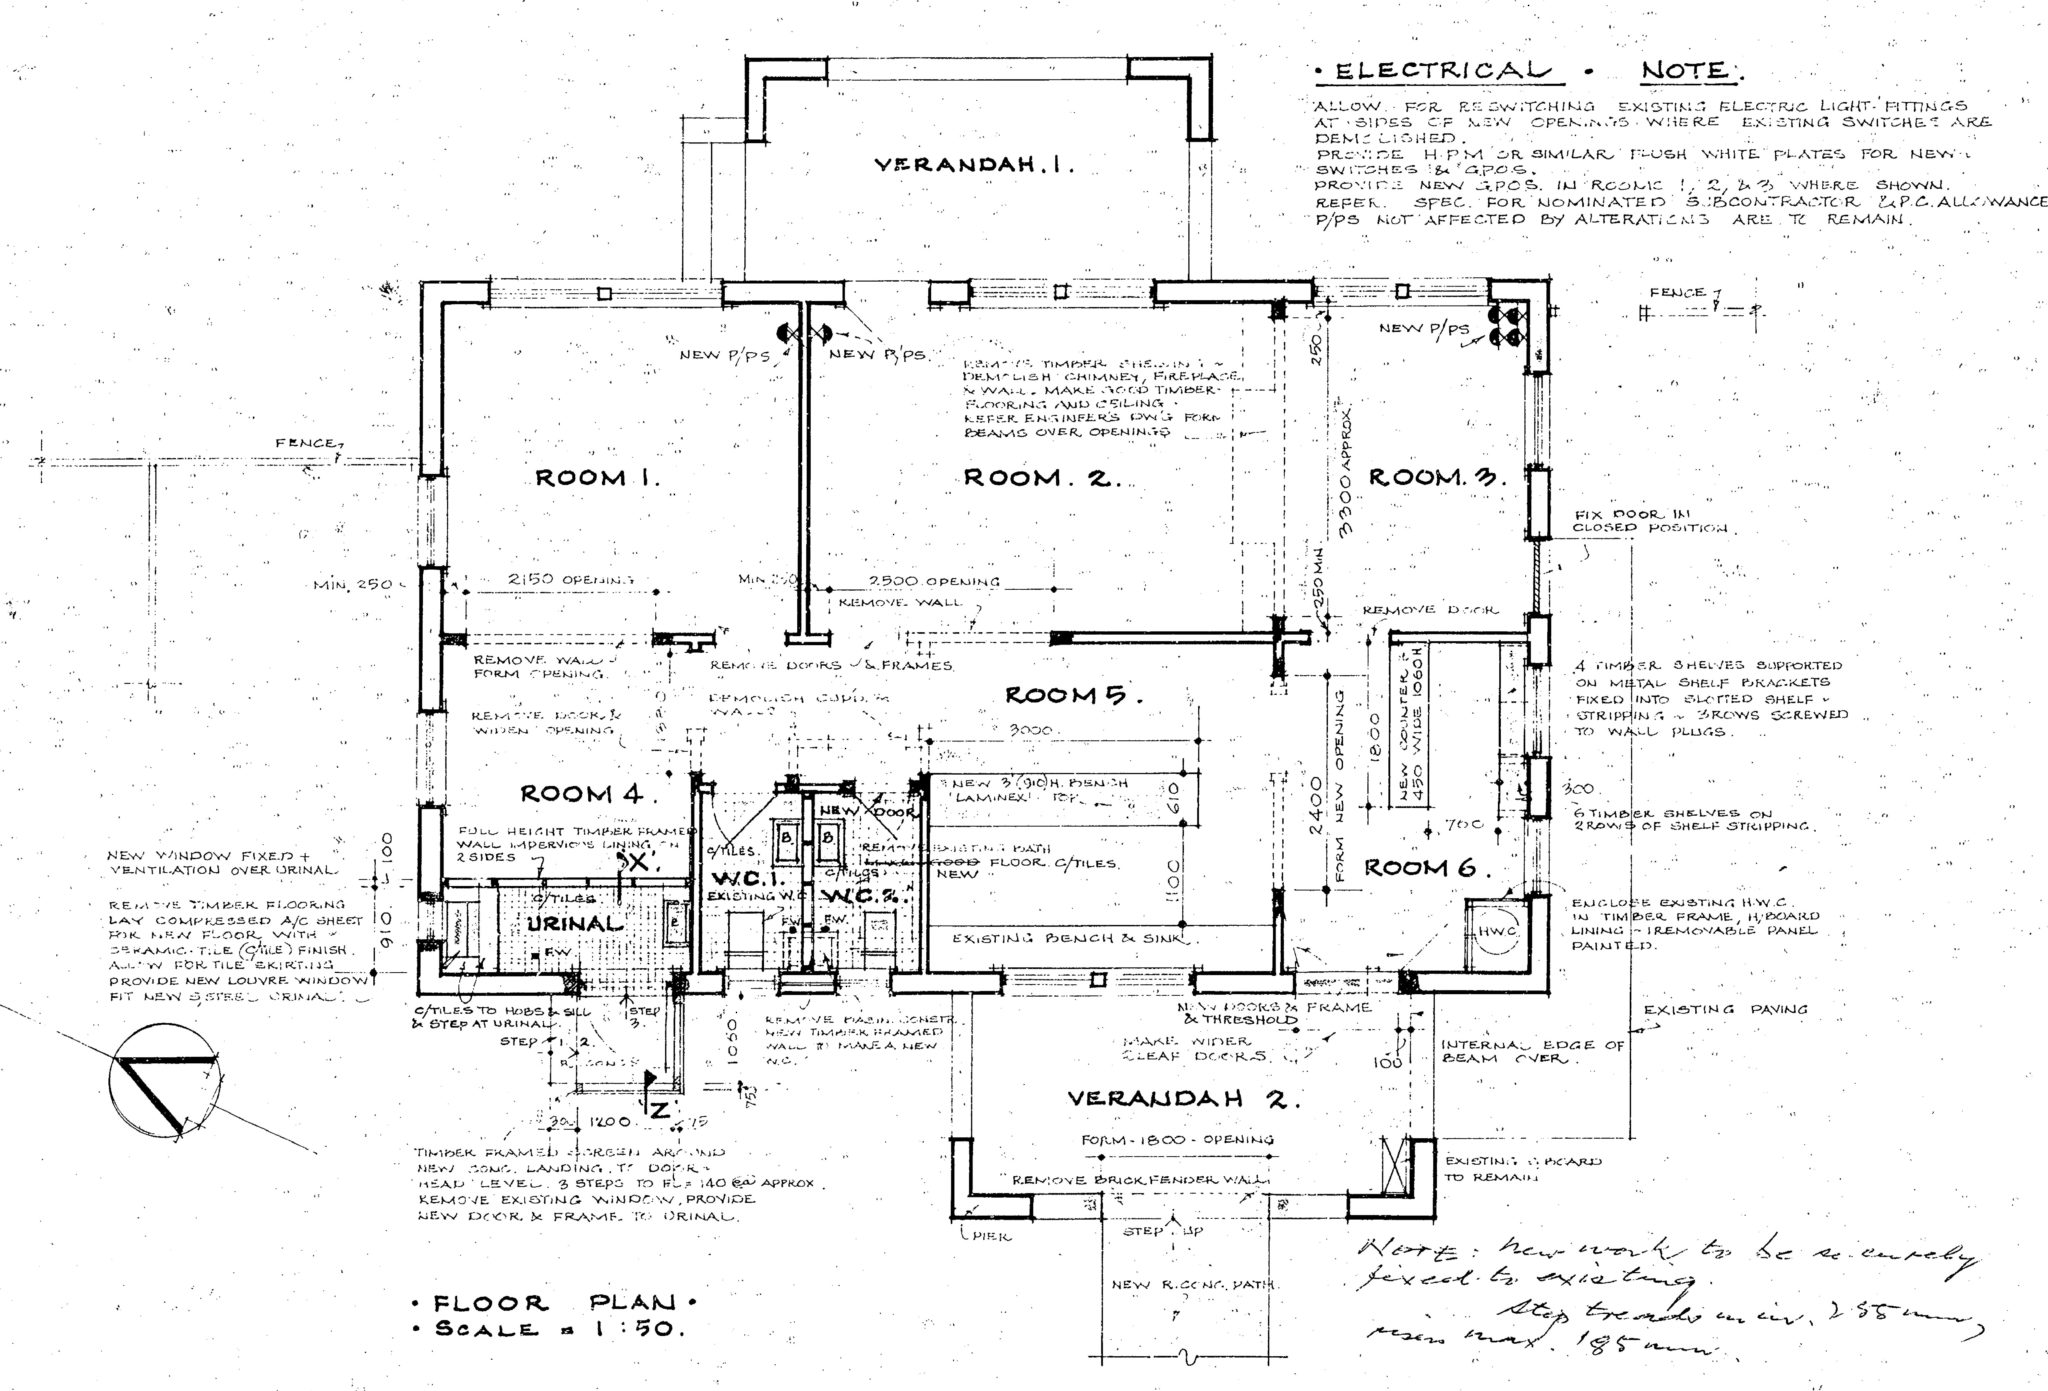 Plans of Ross' house from 1976